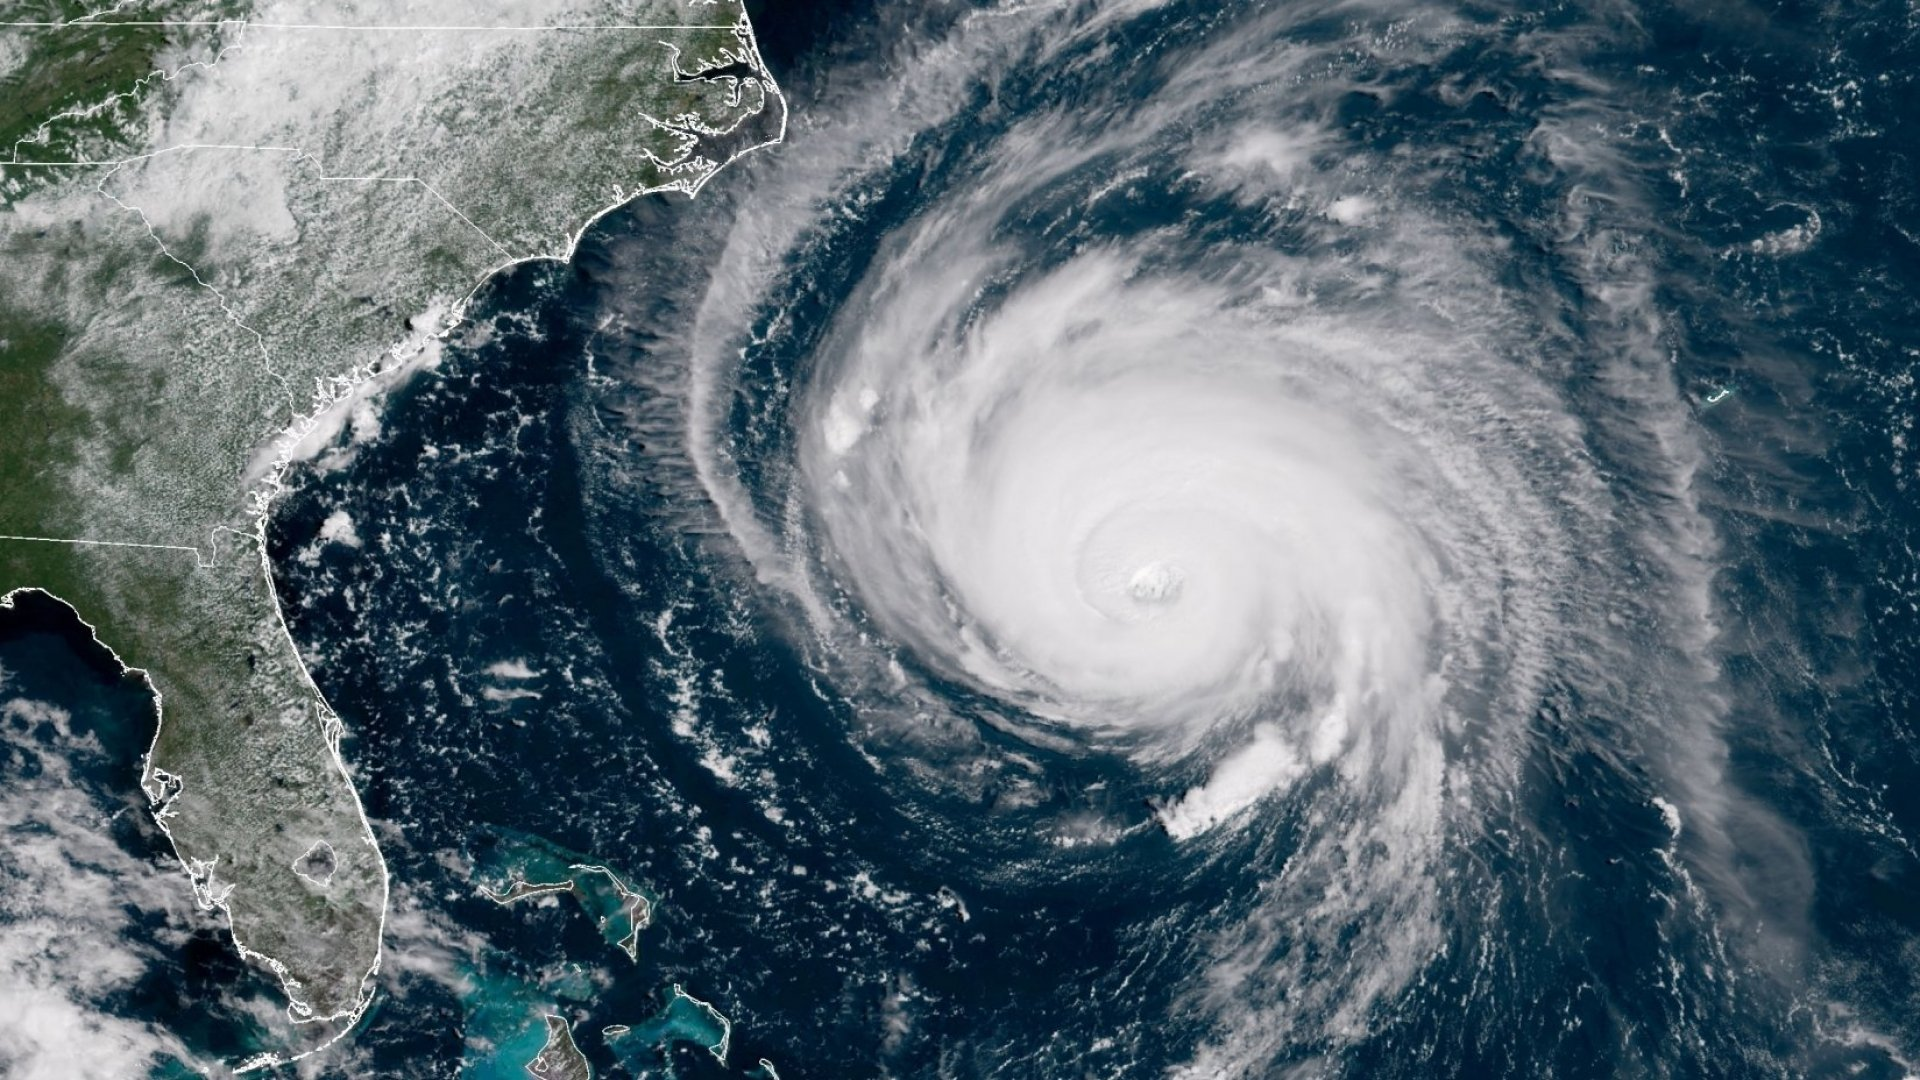 In this satellite image provided by U.S. National Oceanic and Atmospheric Administration (NOAA), Hurricane Florence churns through the Atlantic Ocean toward the U.S. East Coast on September 12, 2018.